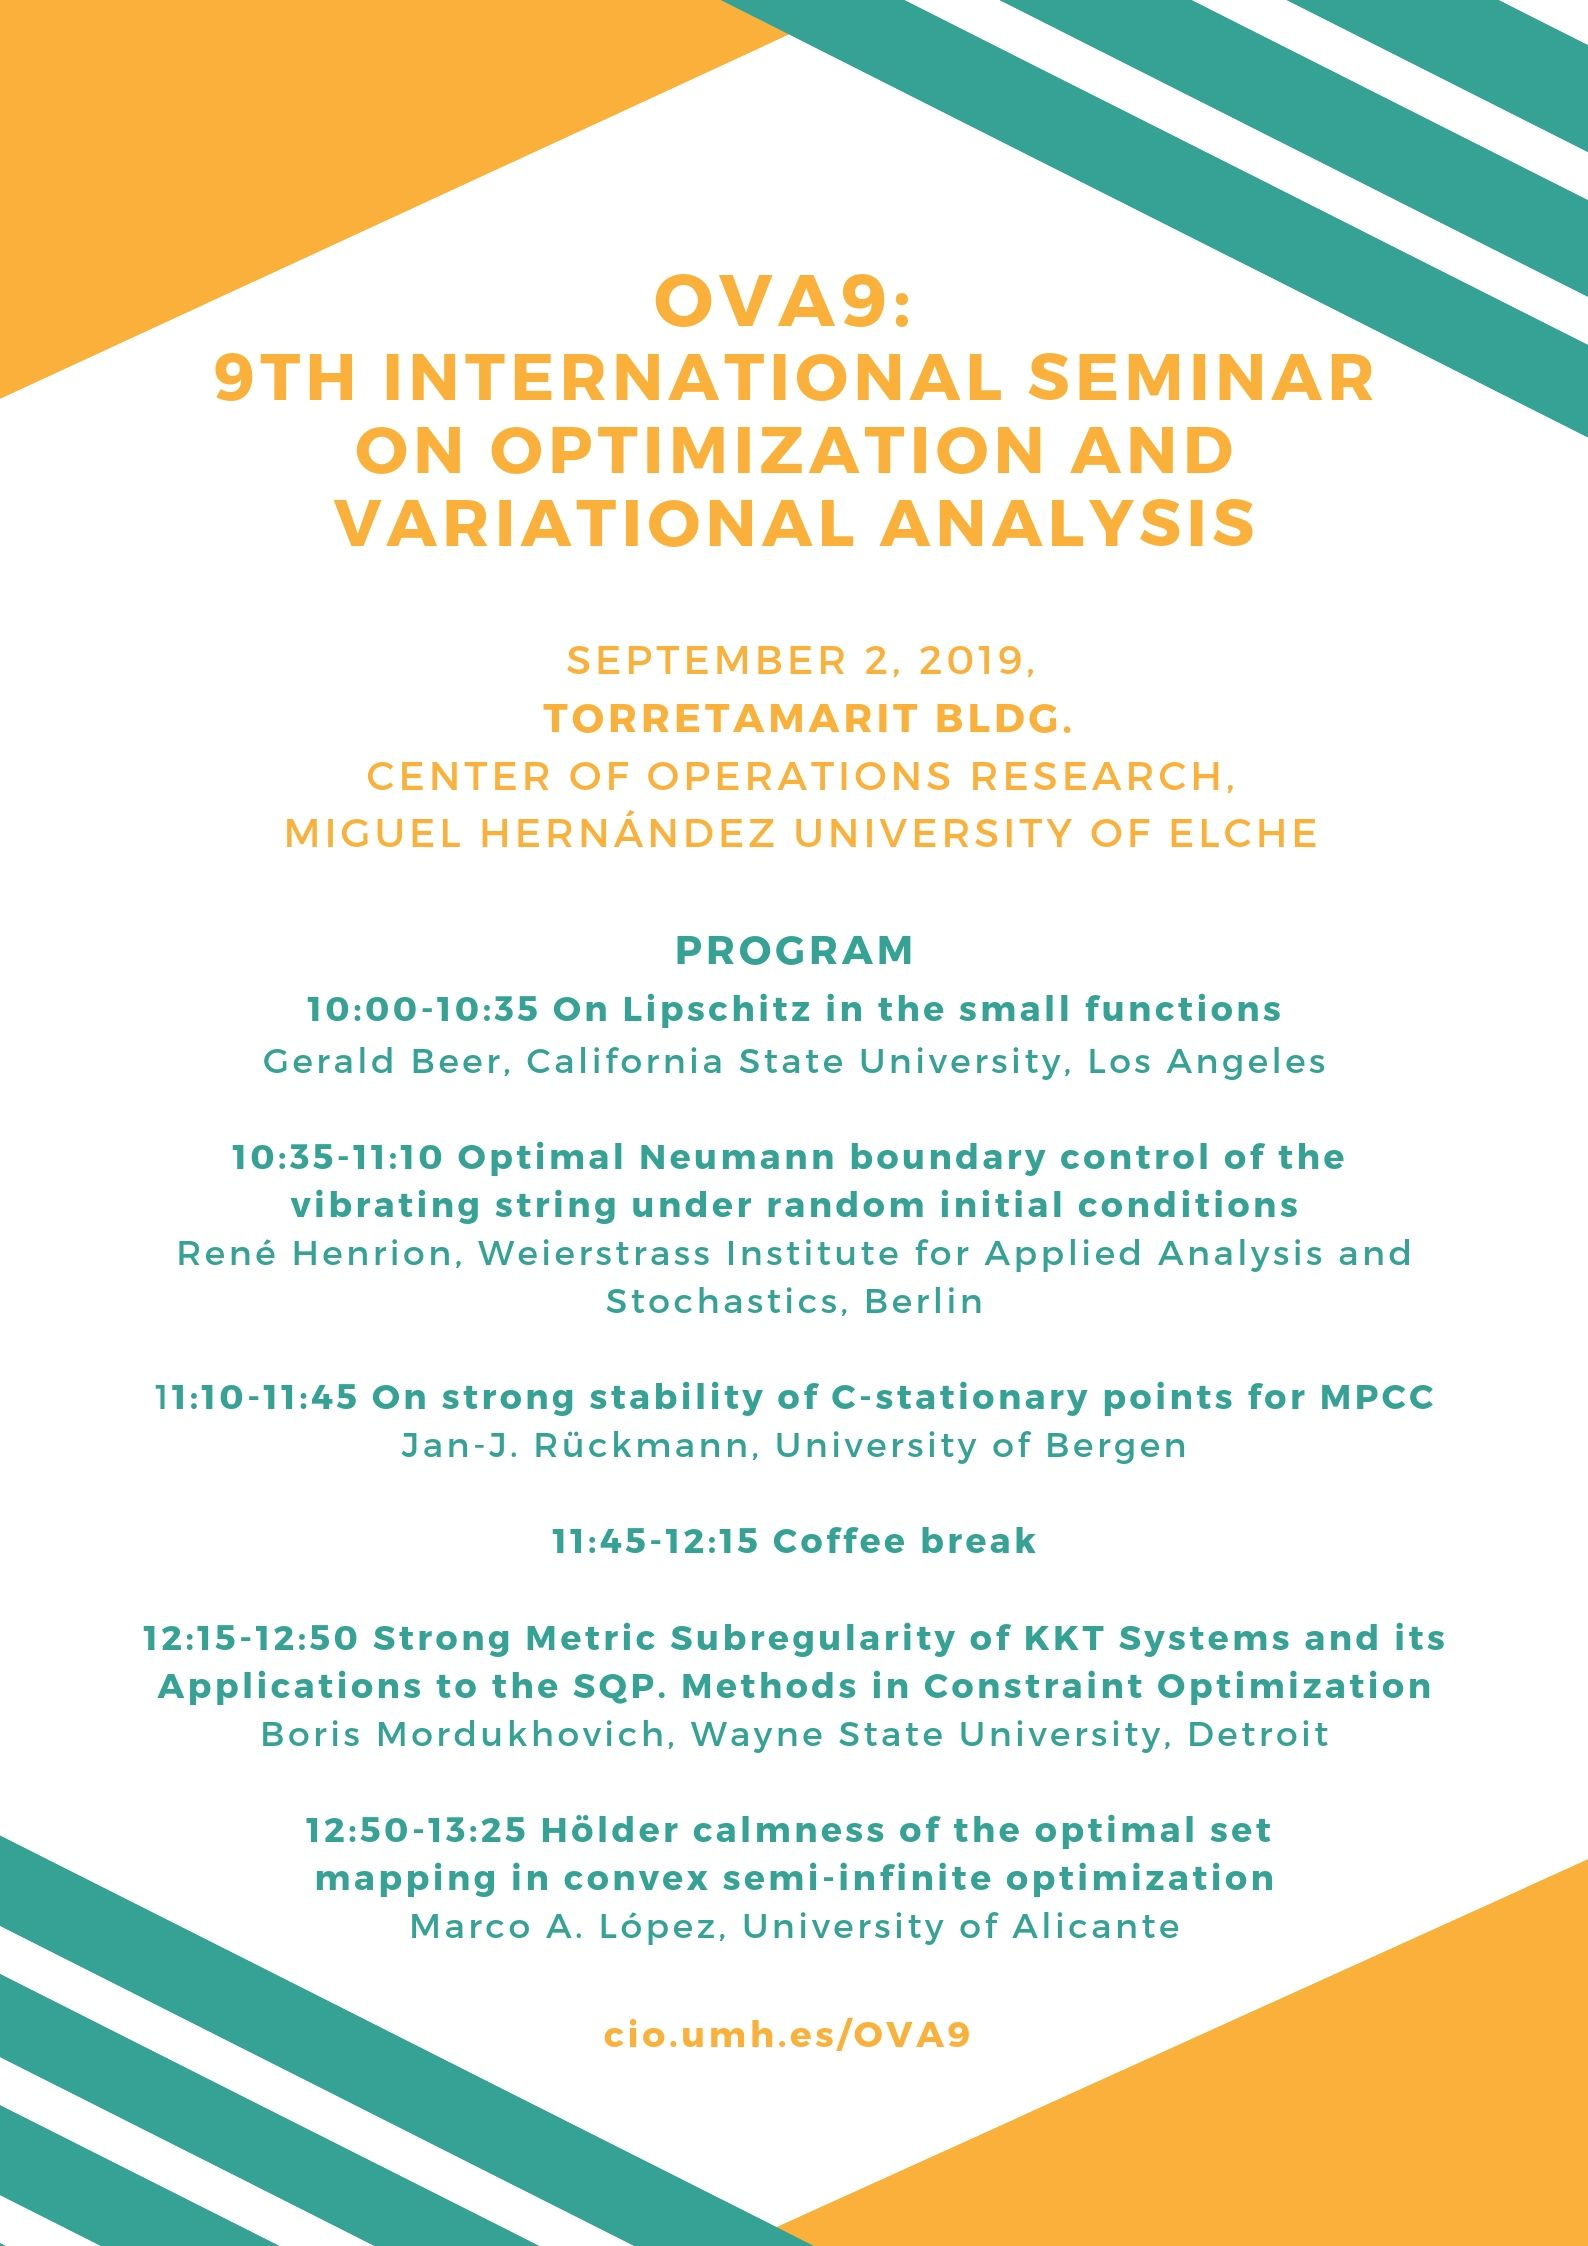 OVA9_ 9th International Seminar on Optimization and Variational Analysis September 2, 2019, Torretamarit Bldg. Center of Operations Research, Miguel Hernández University of Elche Program (1)